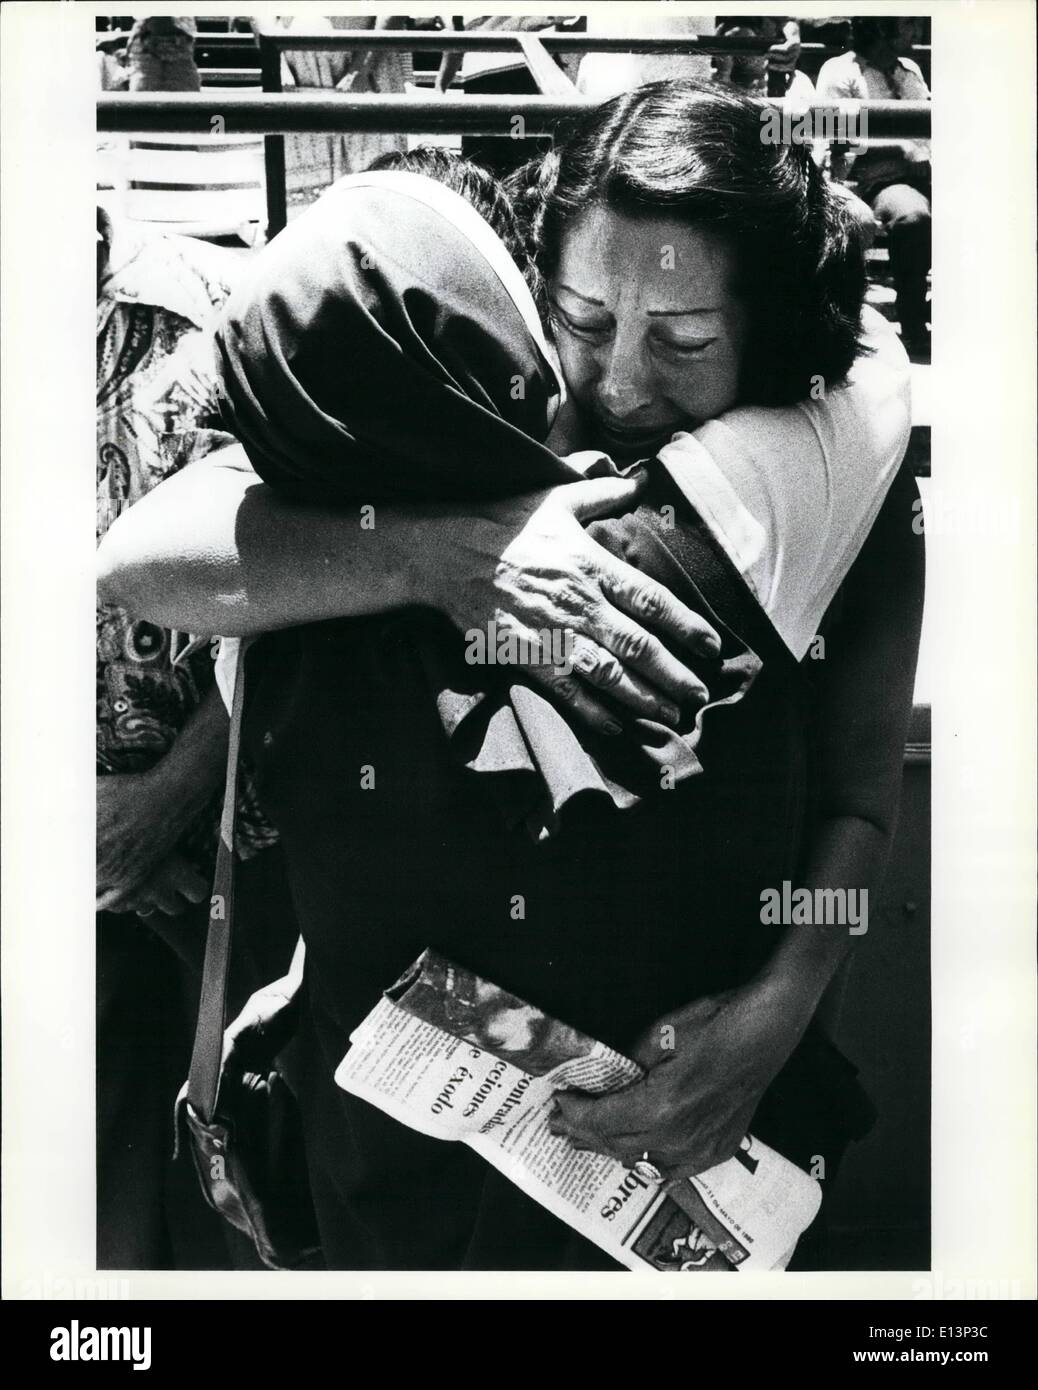 Mar. 22, 2012 - A Cuban refugee woman gives a tearful hug to a nun after the sisters had helped deliver the first mass to the refugees since they arrived in the U.S. the mass was performed in the Orange Bown in Kiami. The orange bowl was used as a holding area for the refugees before they were moved to processing centers in the Miami - Stock Image